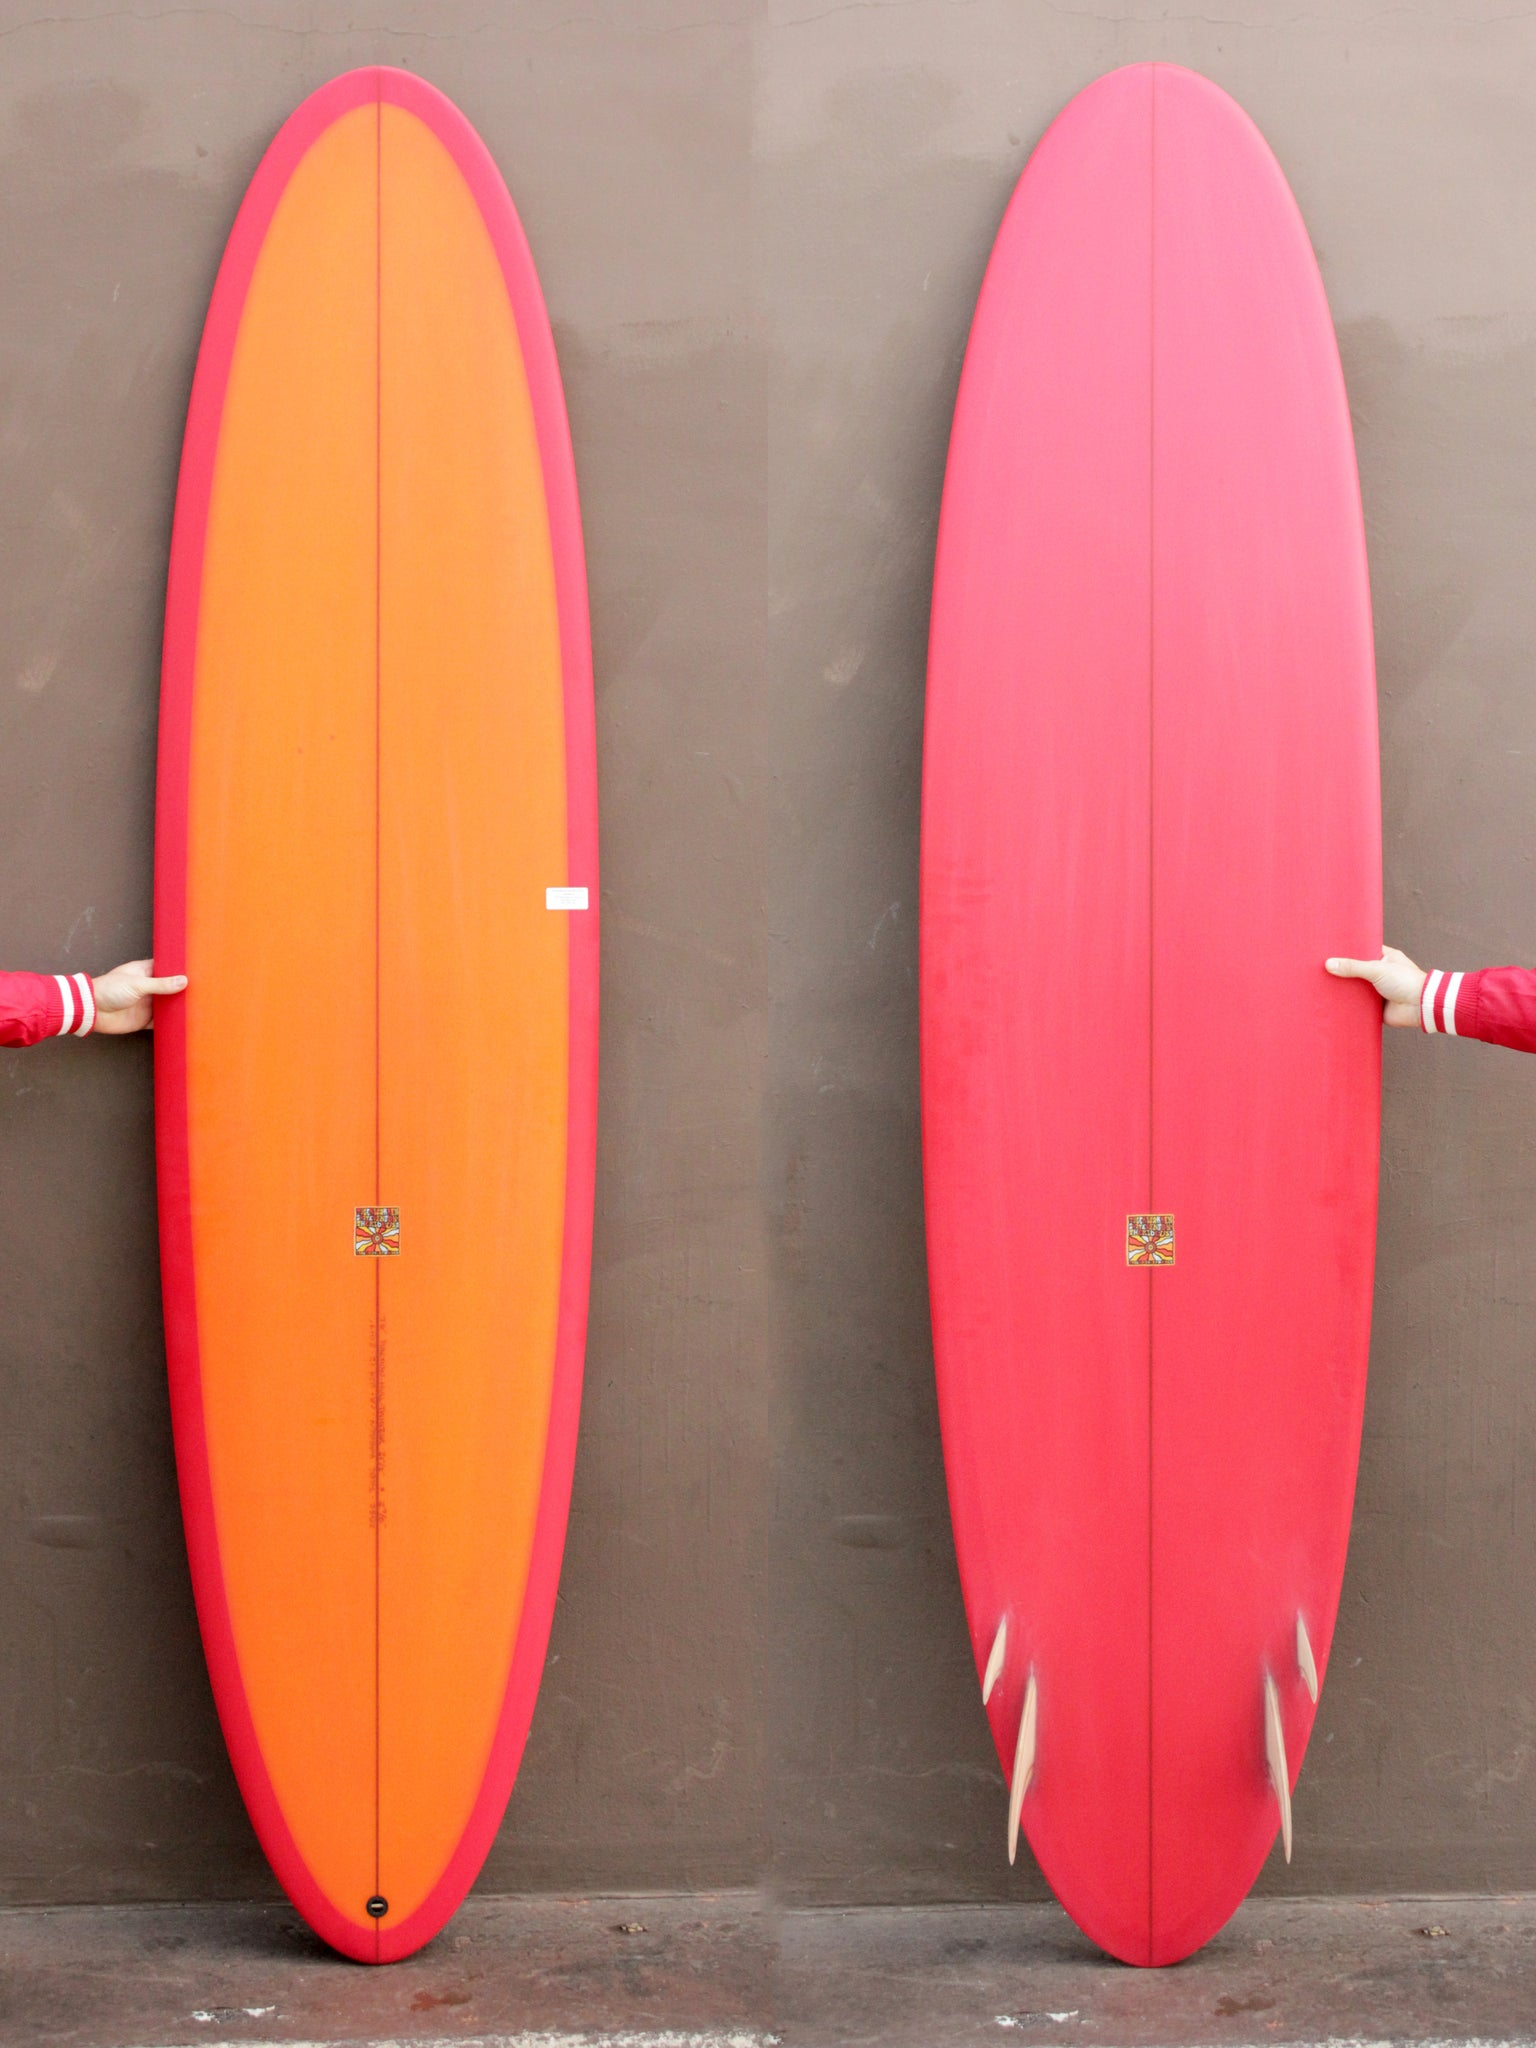 7'6 Tyler Warren Twinzer Function Hull